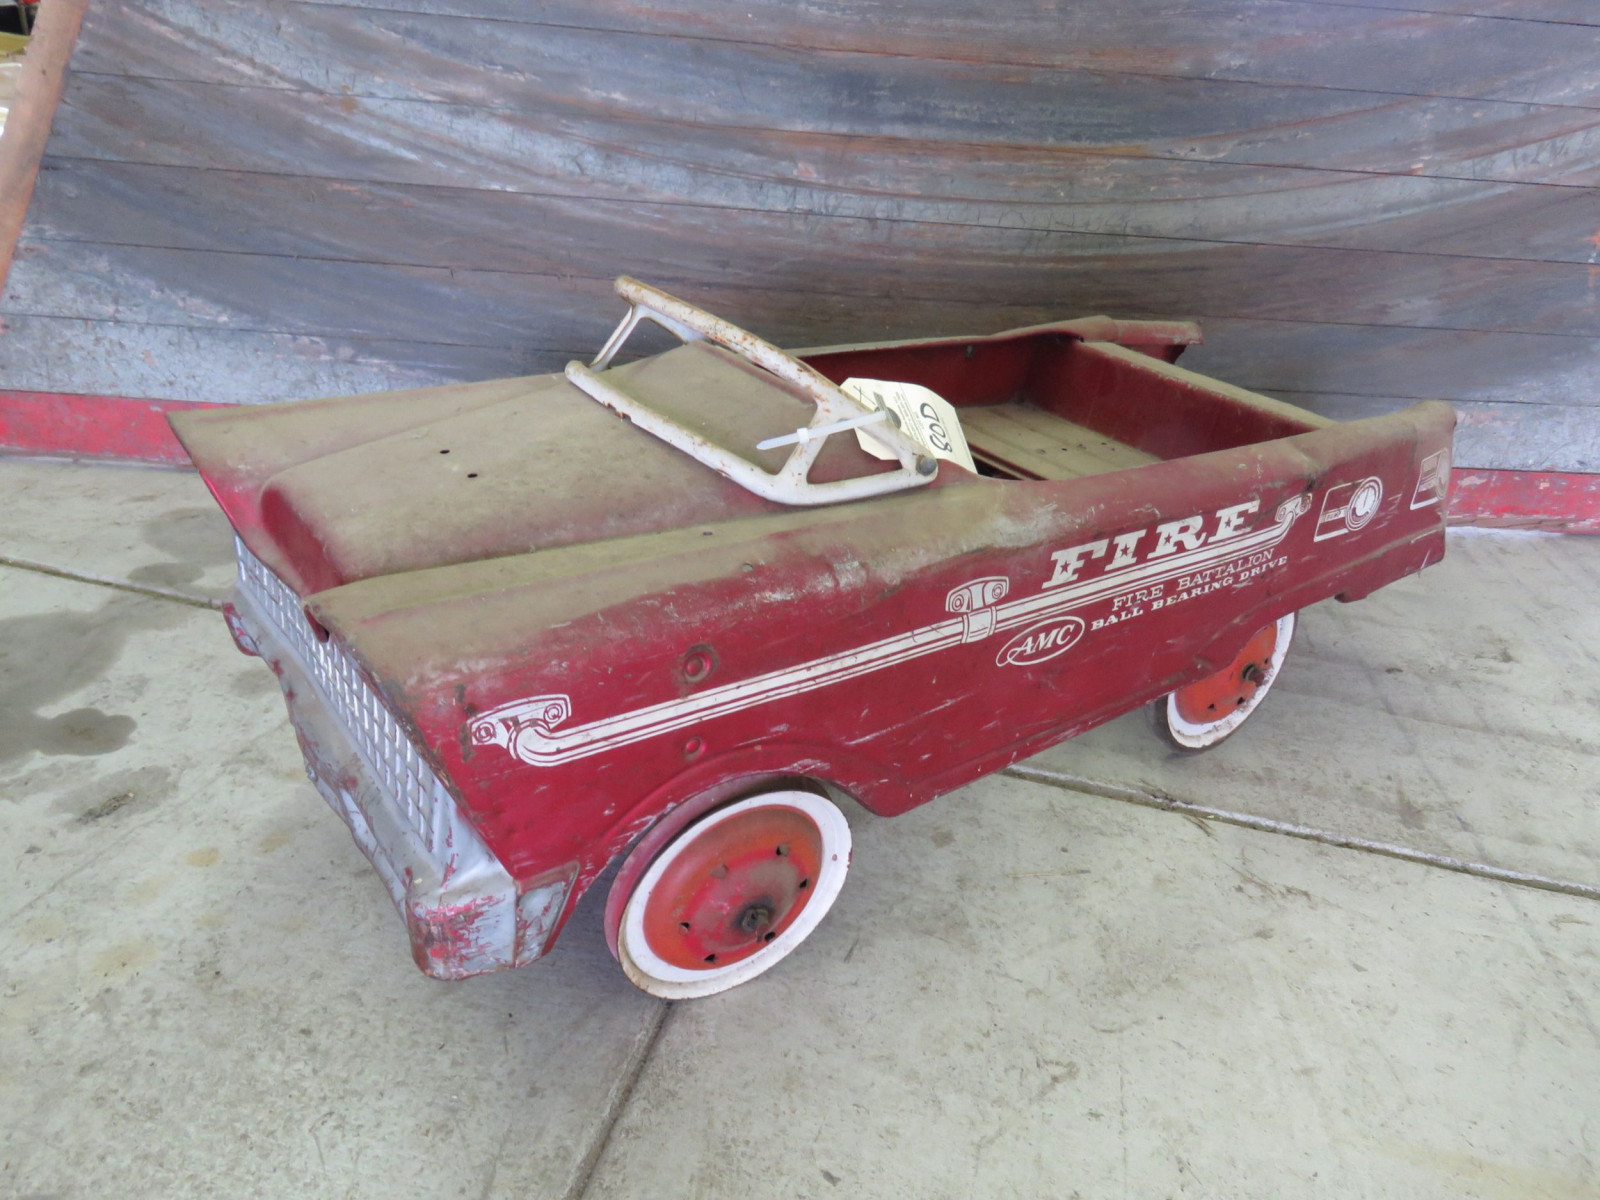 AMC Fire Chief Battalion Project Pedal Car - Image 1